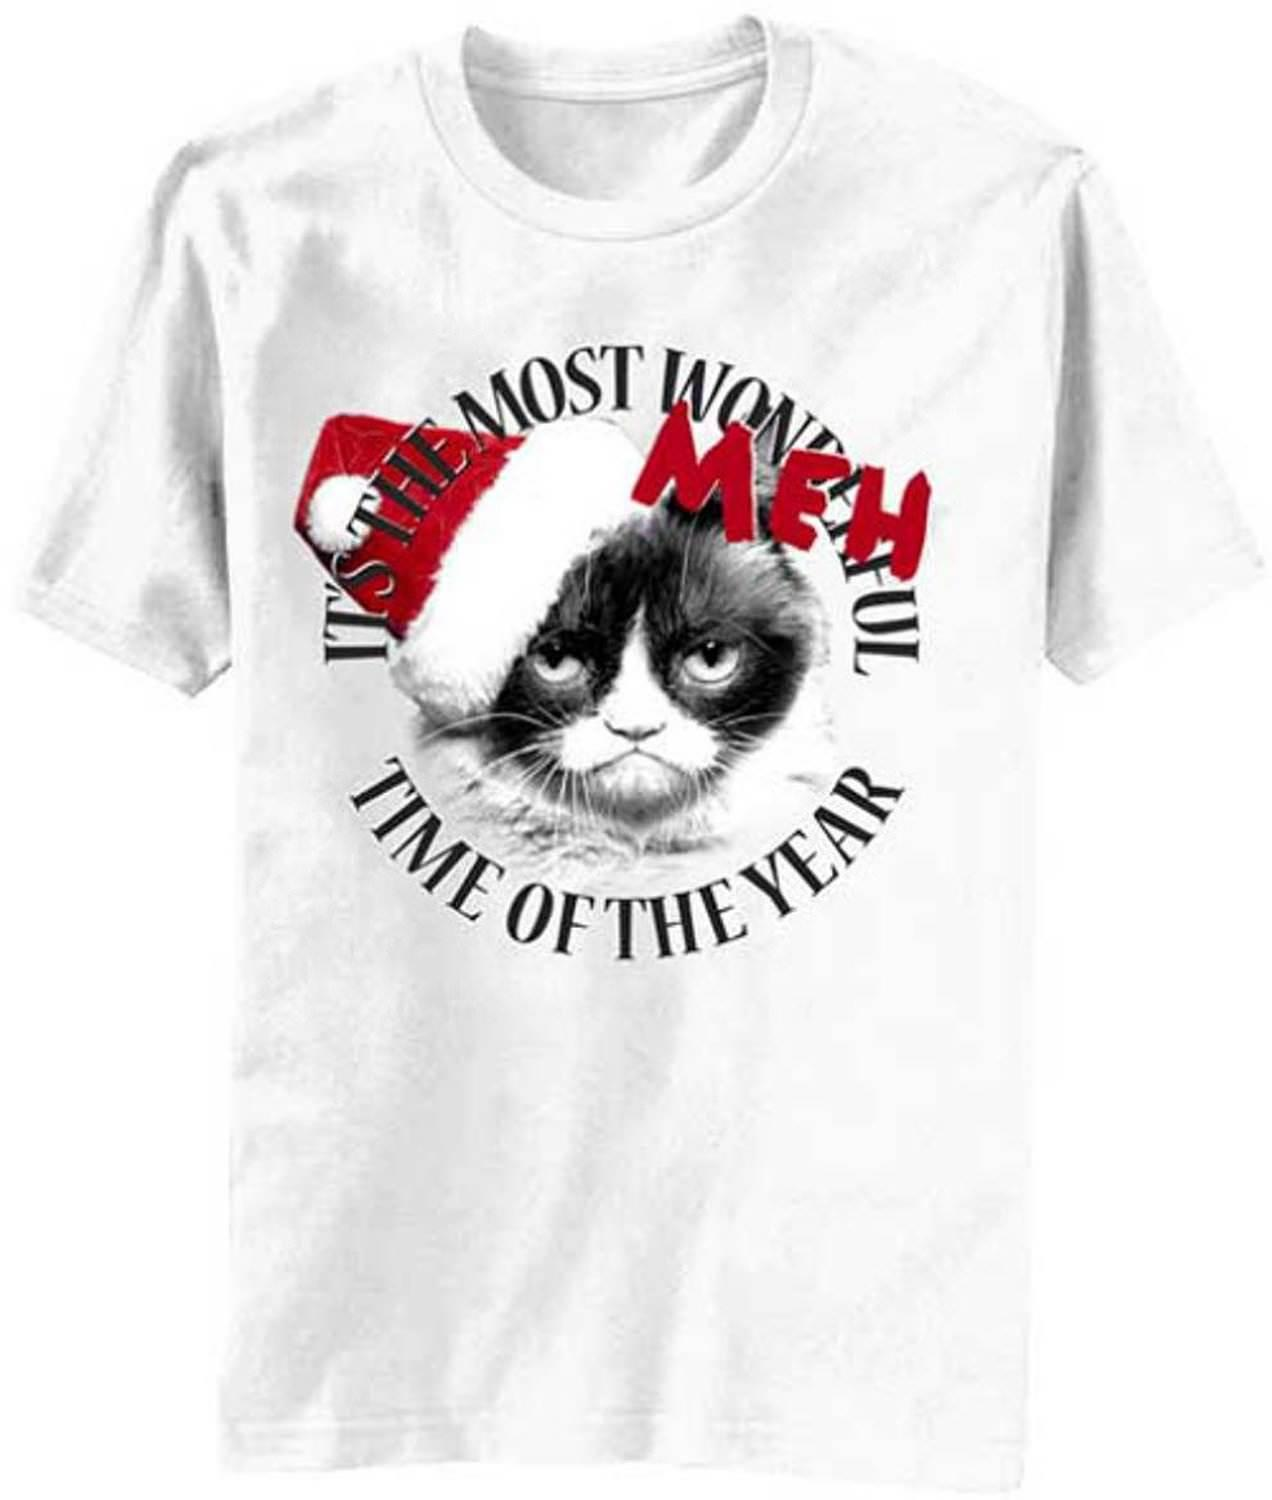 b2b76cb4 Grumpy Cat Its The Most Meh Time Of The Year T Shirt Tees Custom Jersey T  Shirt Buy T Shirts Online Funny Tee Shirts From Happycup, $16.24| DHgate.Com